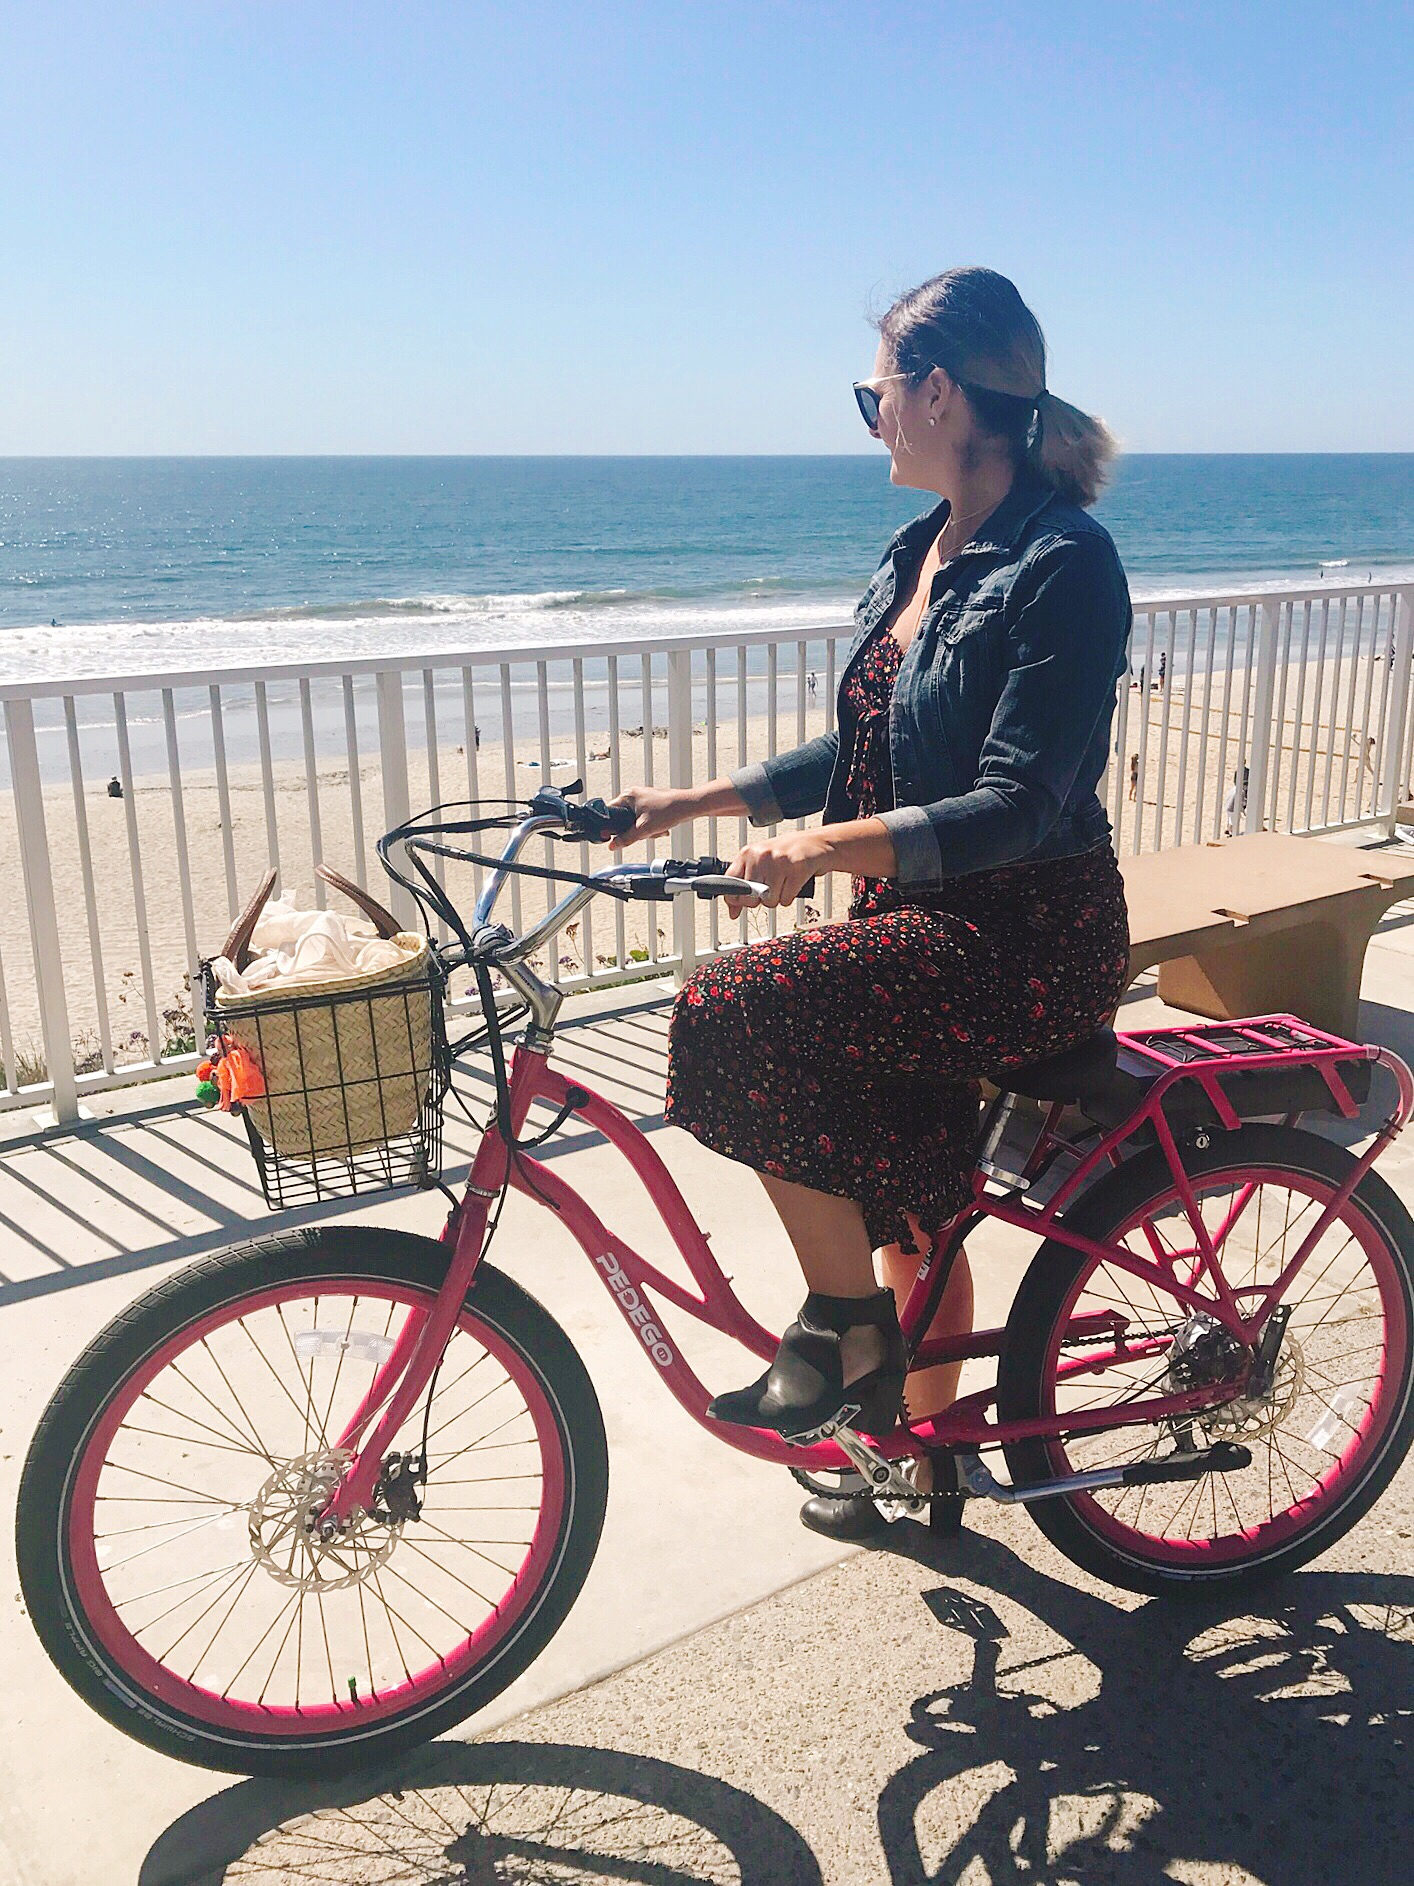 Bike ride at Carlsbad Beach, California